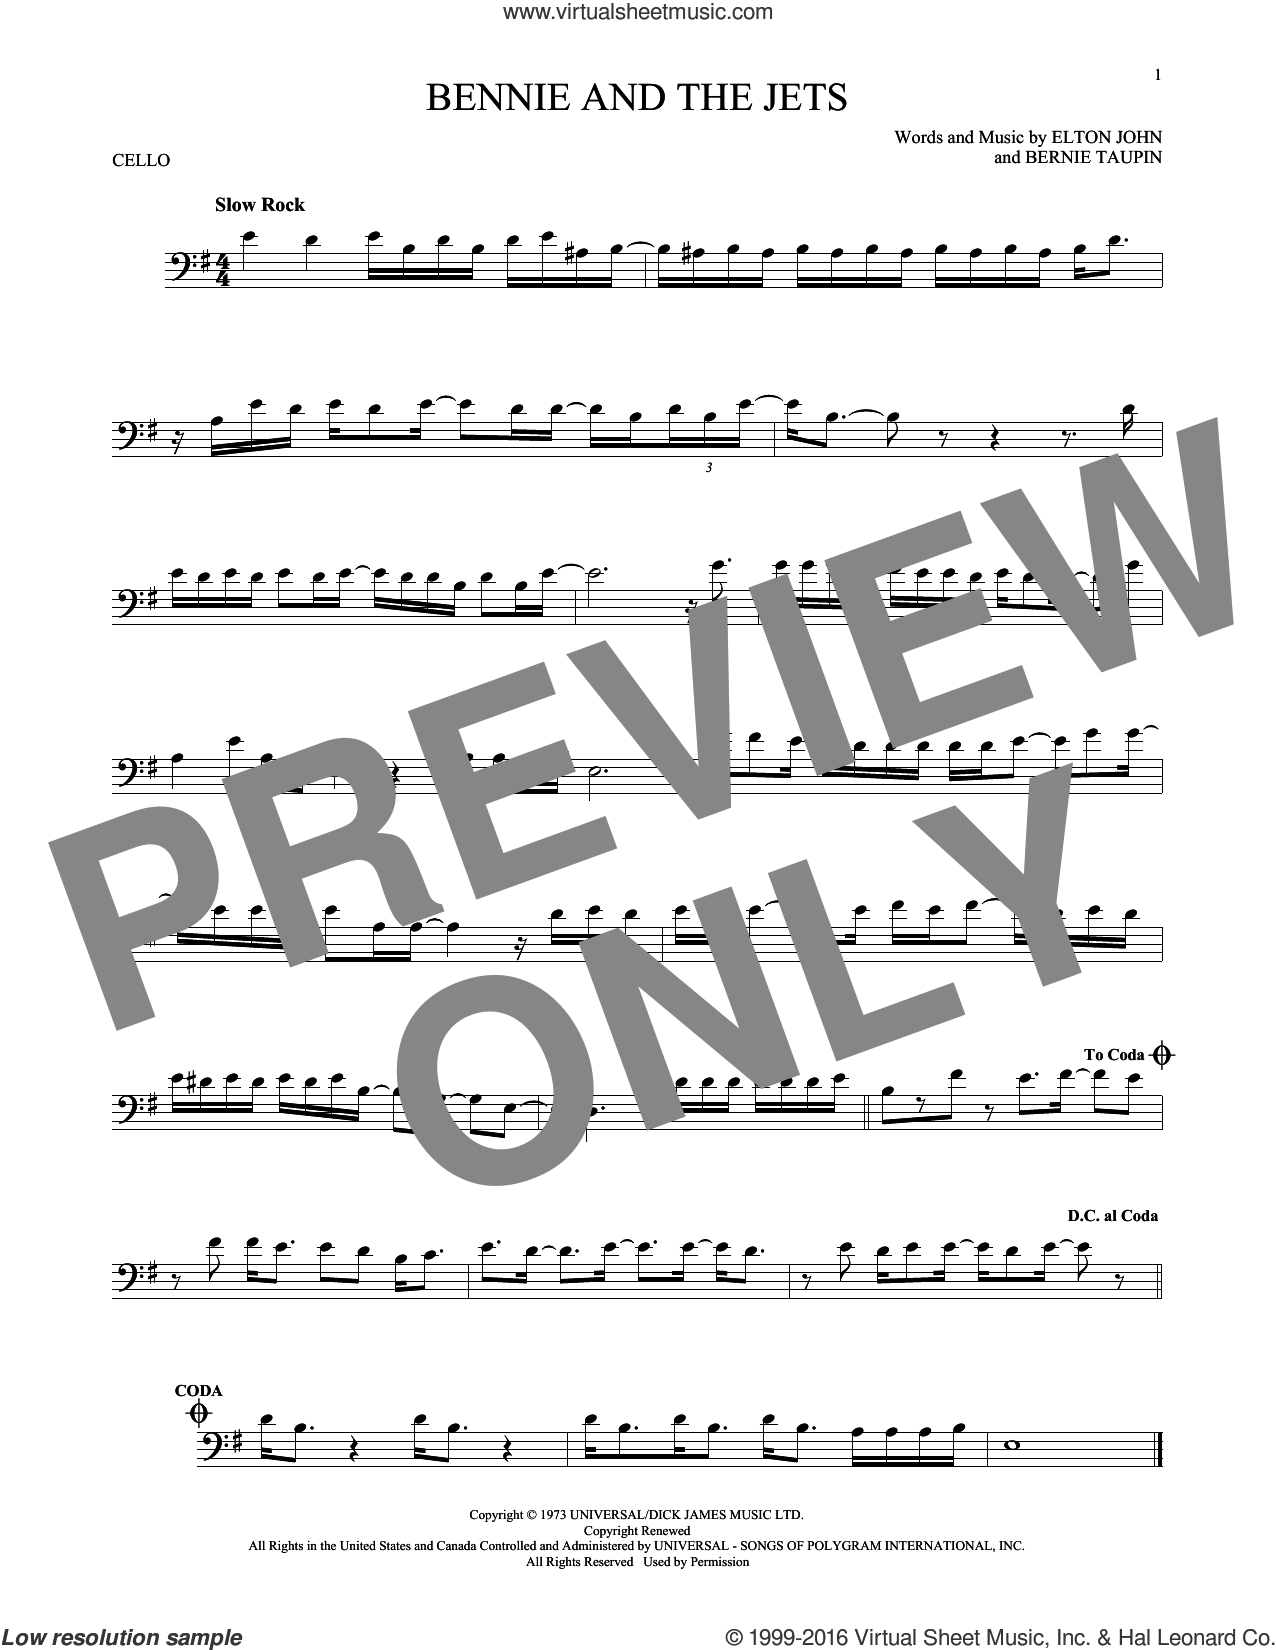 Bennie And The Jets sheet music for cello solo by Elton John and Bernie Taupin, intermediate skill level